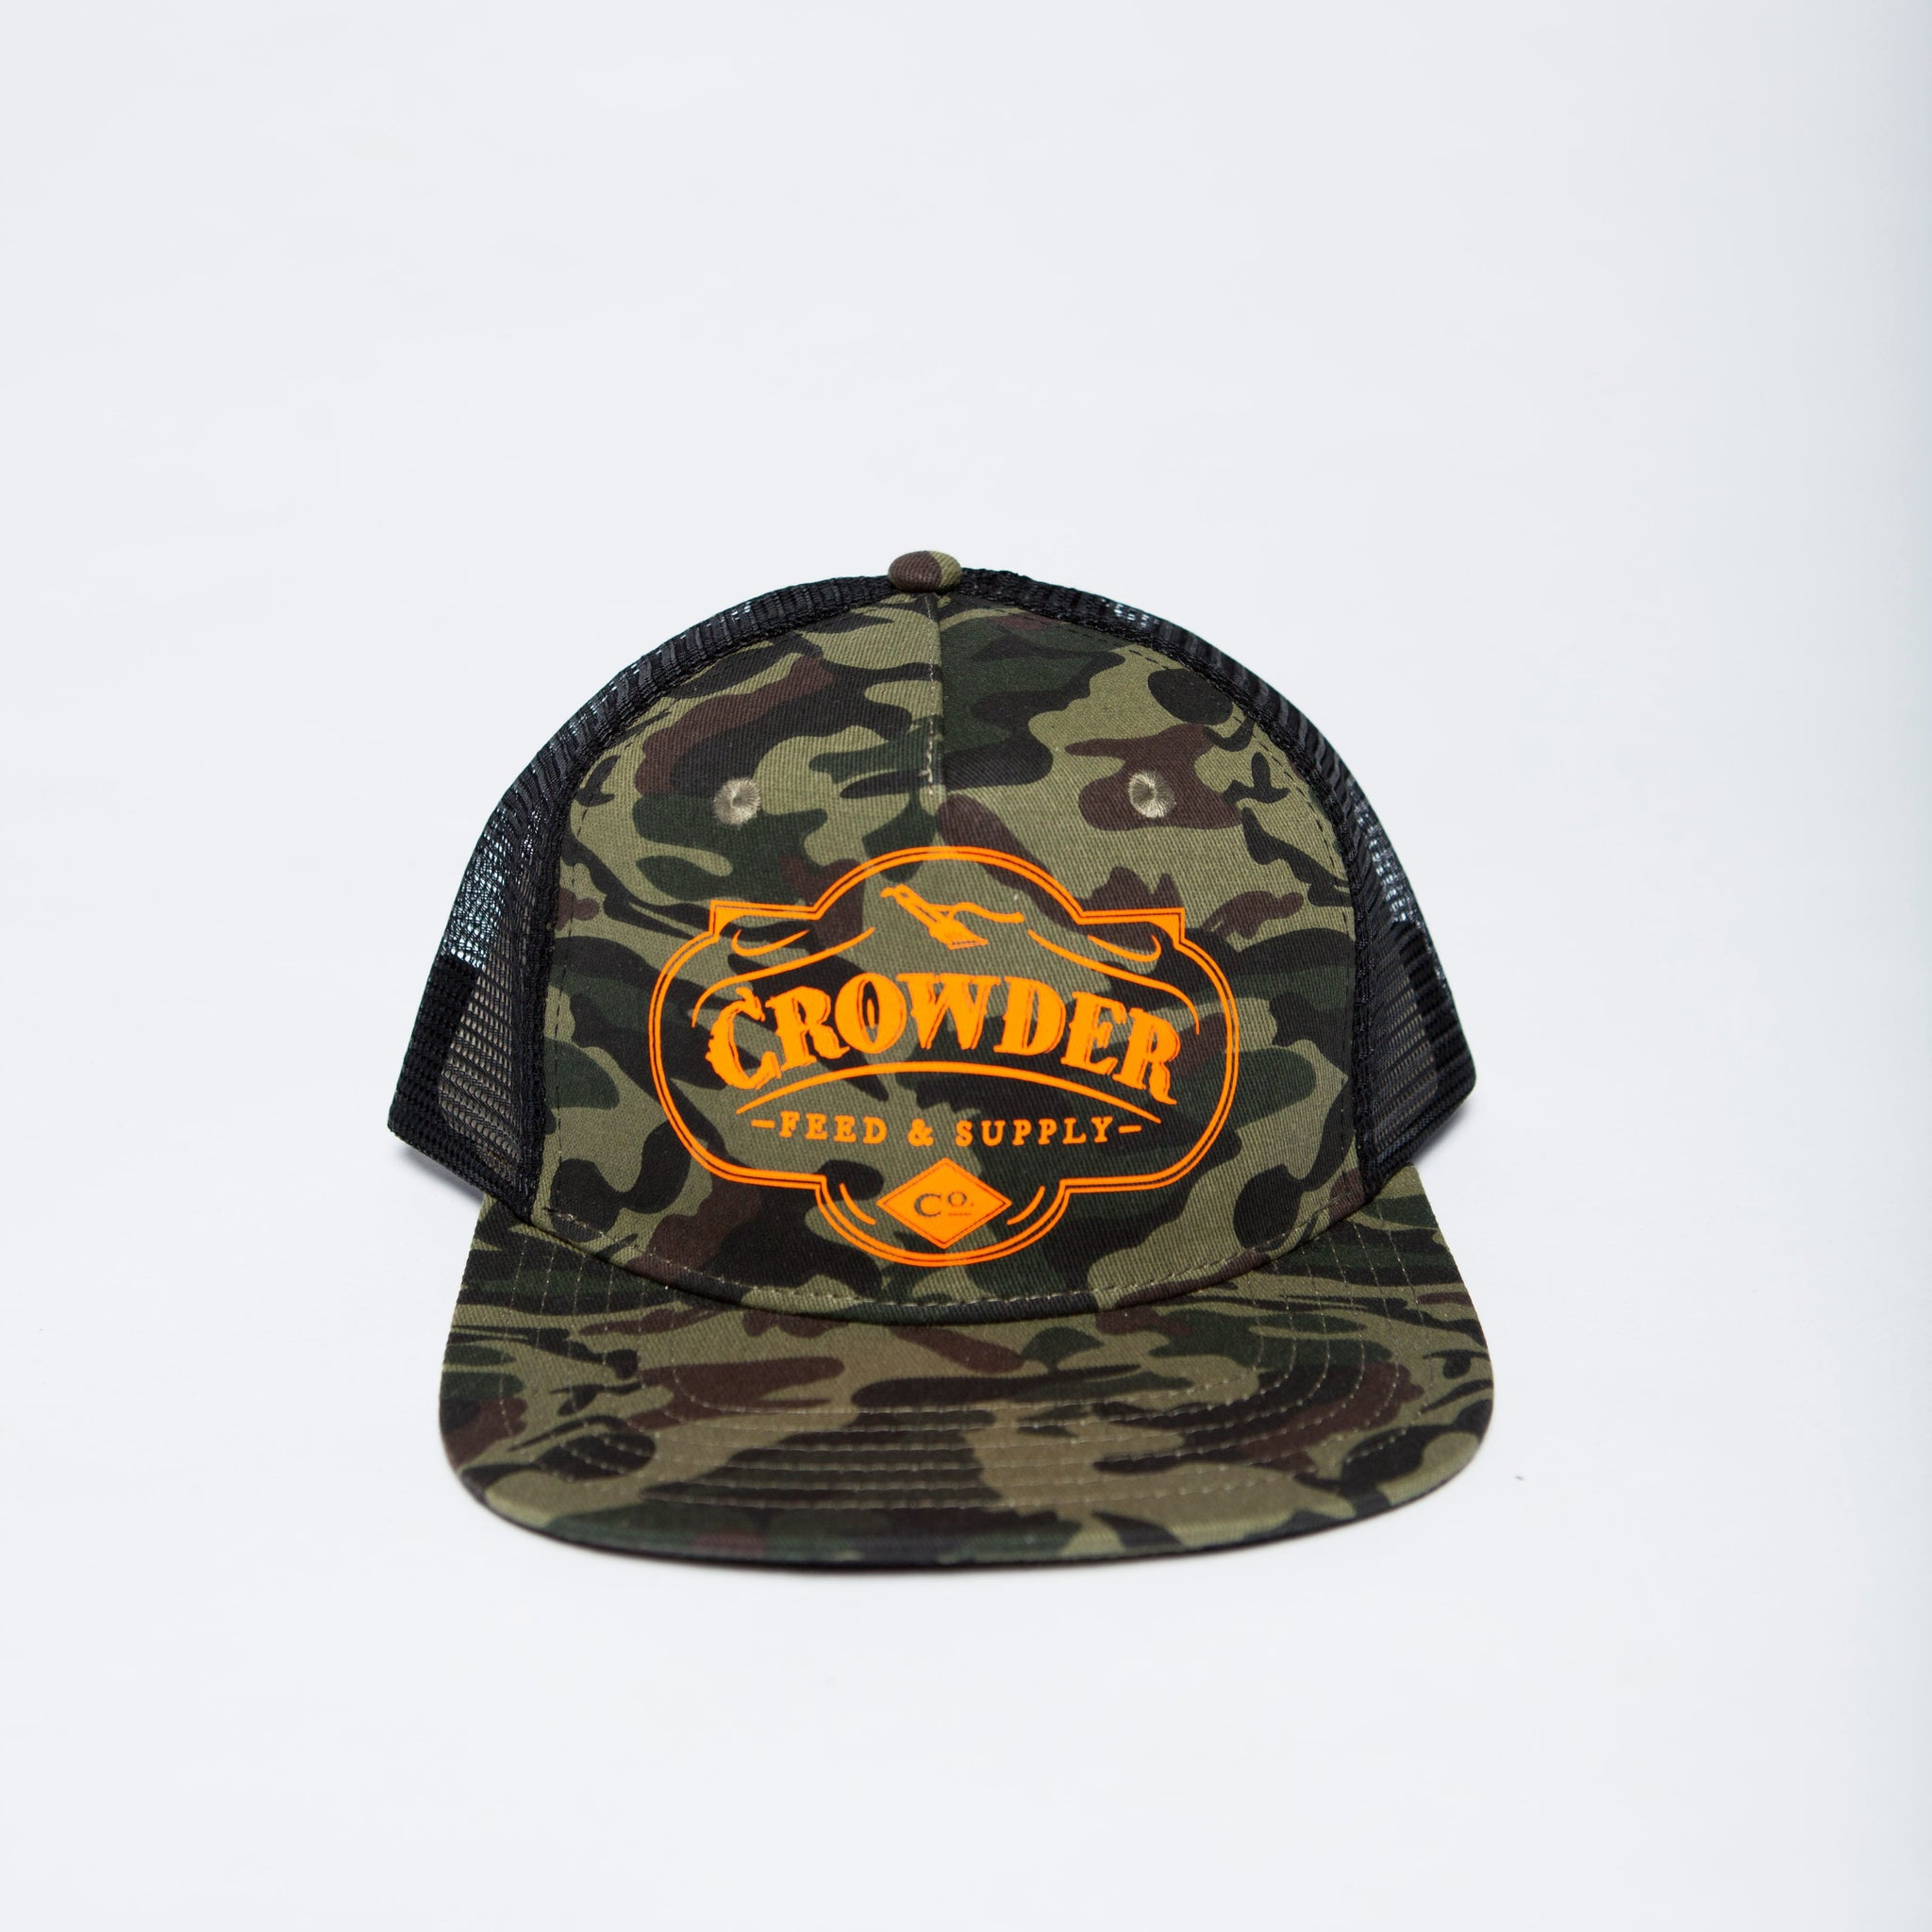 5cd20e29 CROWDER MUSIC | Crowder Feed & Supply Co. Trucker Hat - Camo ...